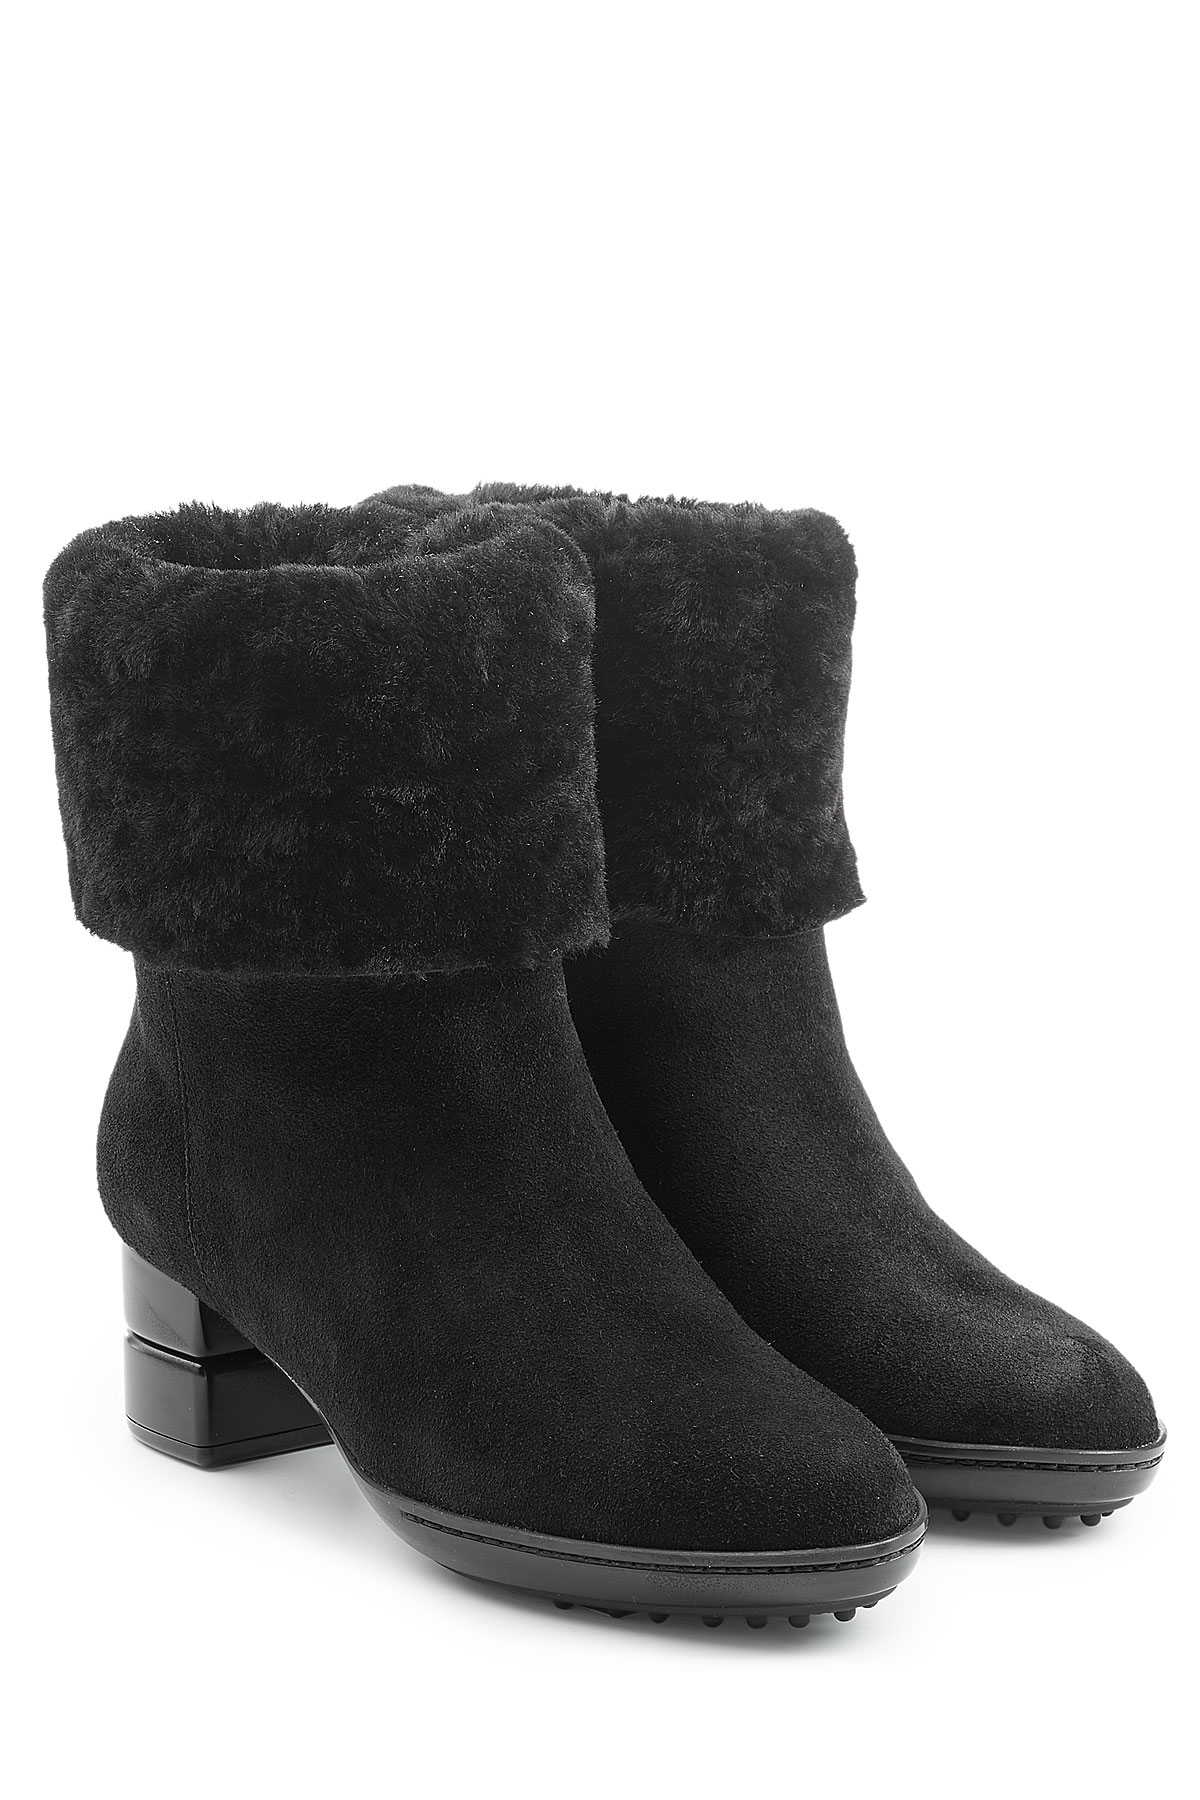 ferragamo suede ankle boots with sheepskin black in